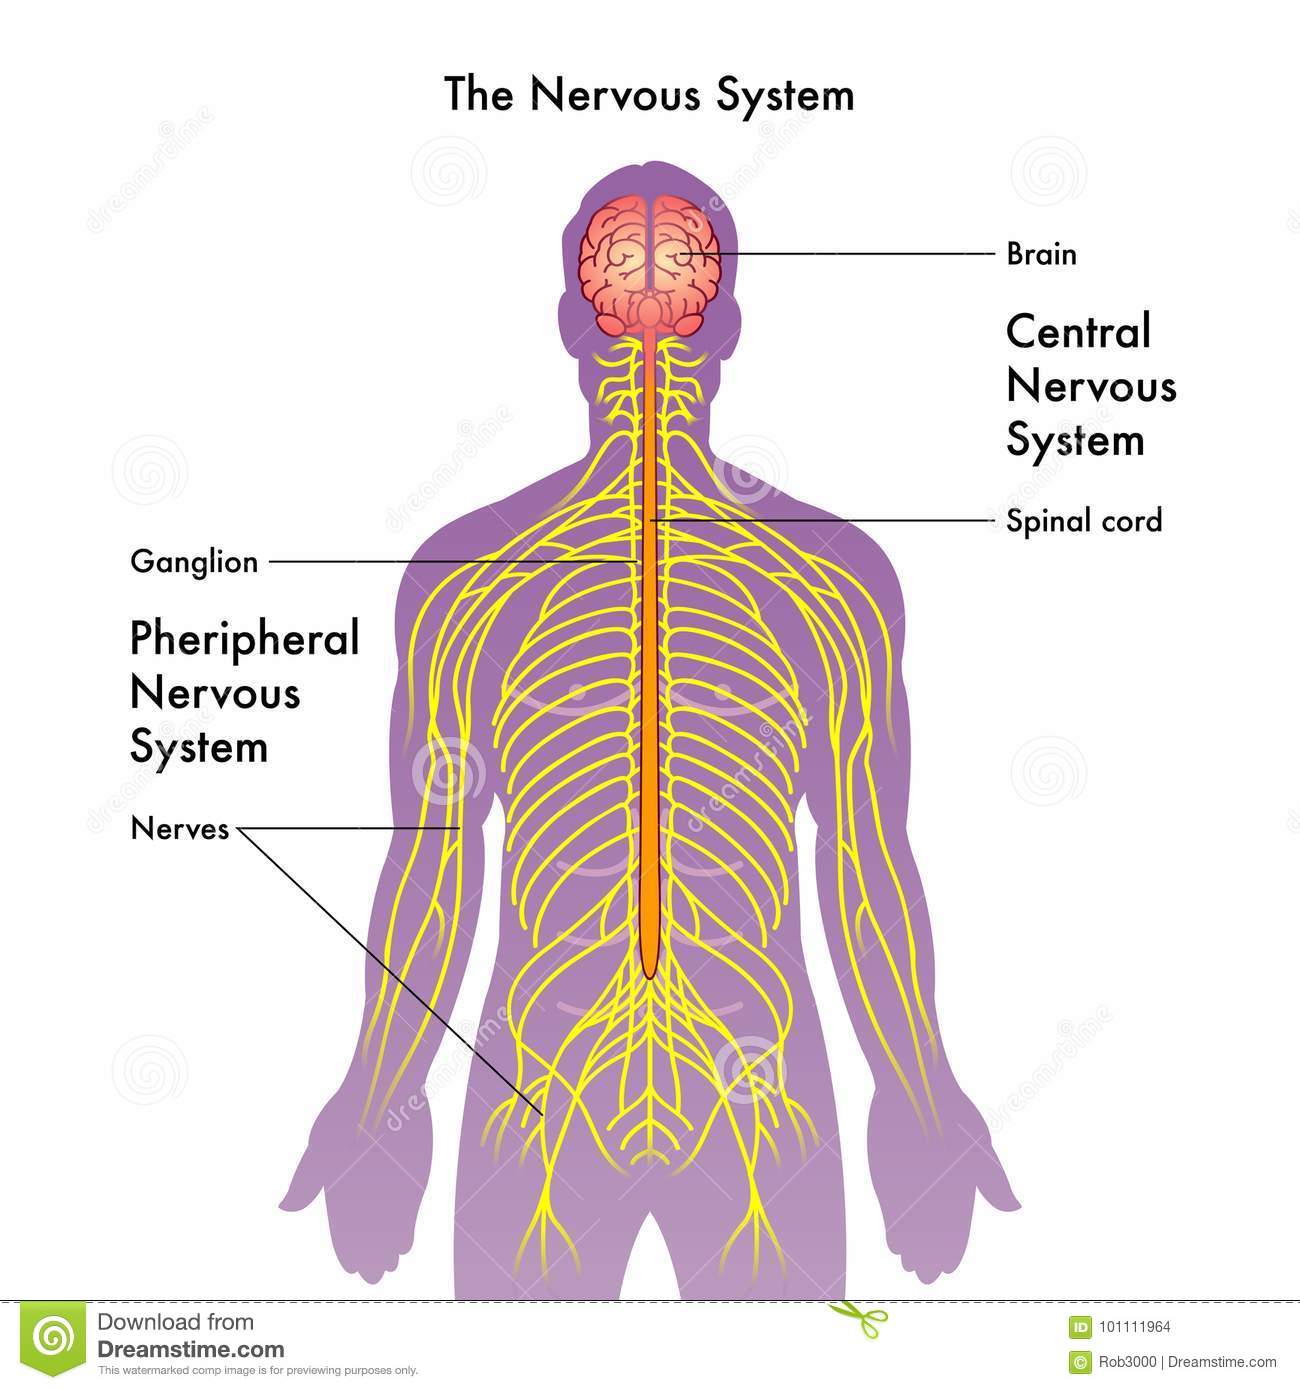 nervous system illustration stock vector - illustration of nervous